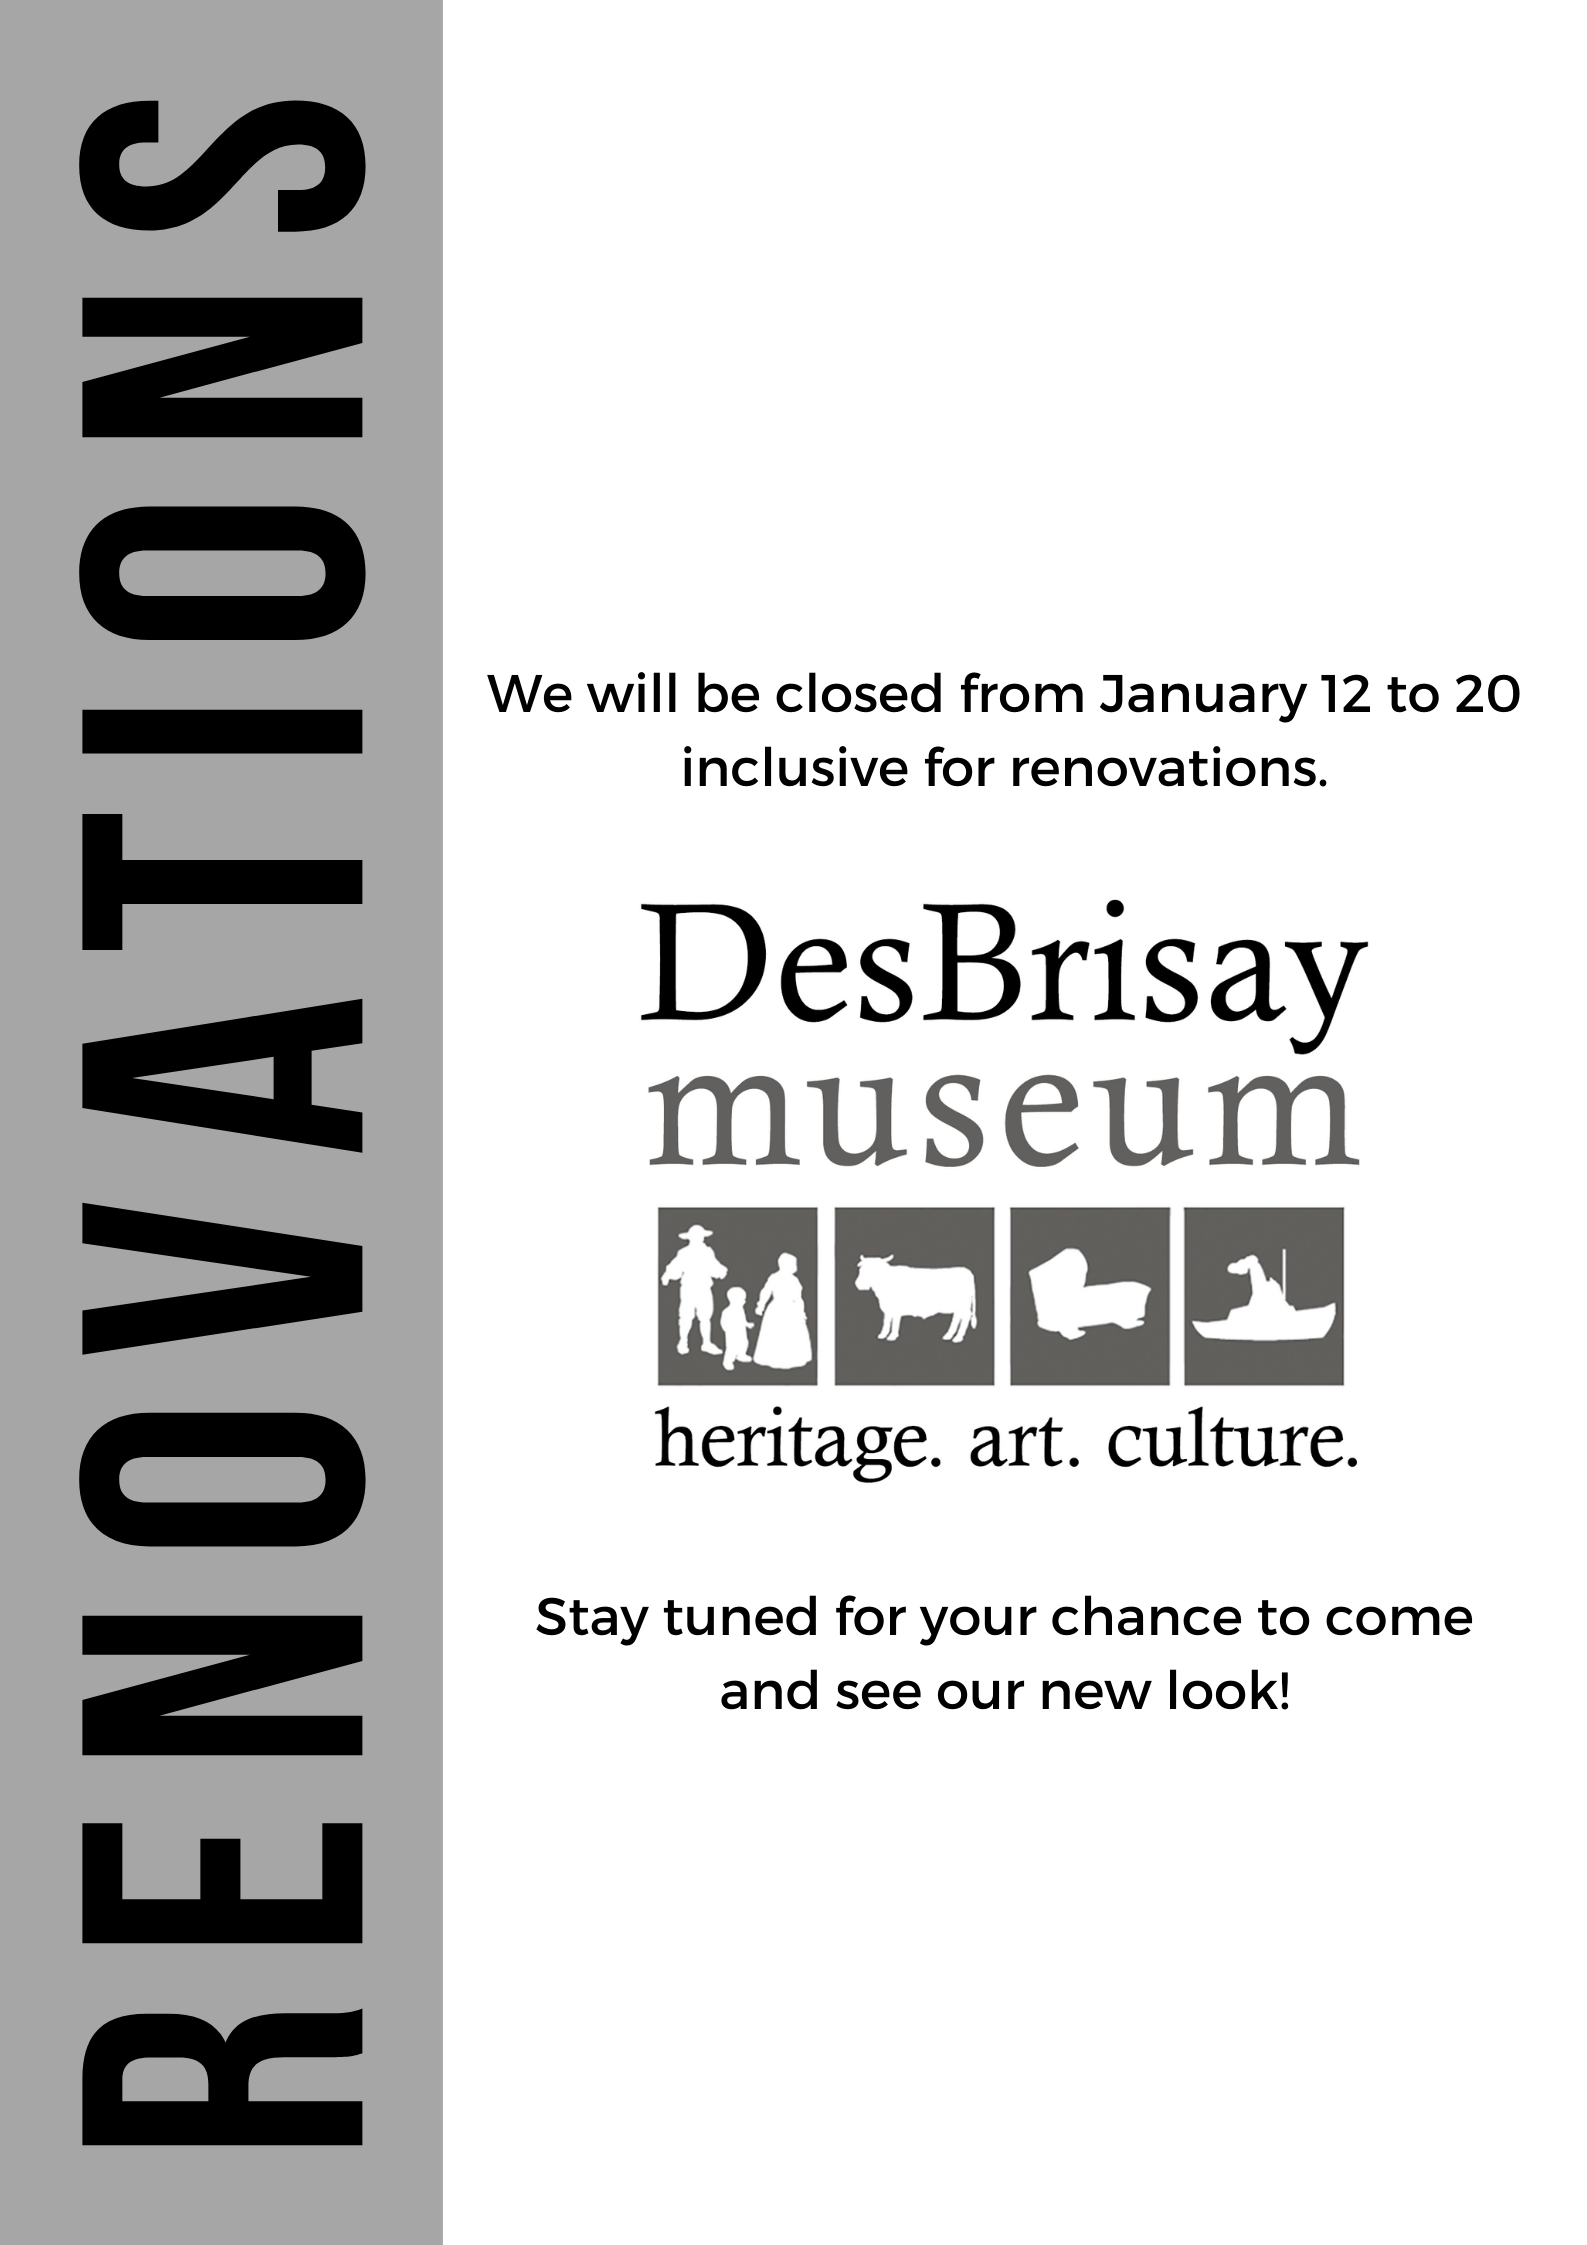 DesBrisay Museum Renovation Notice 2020